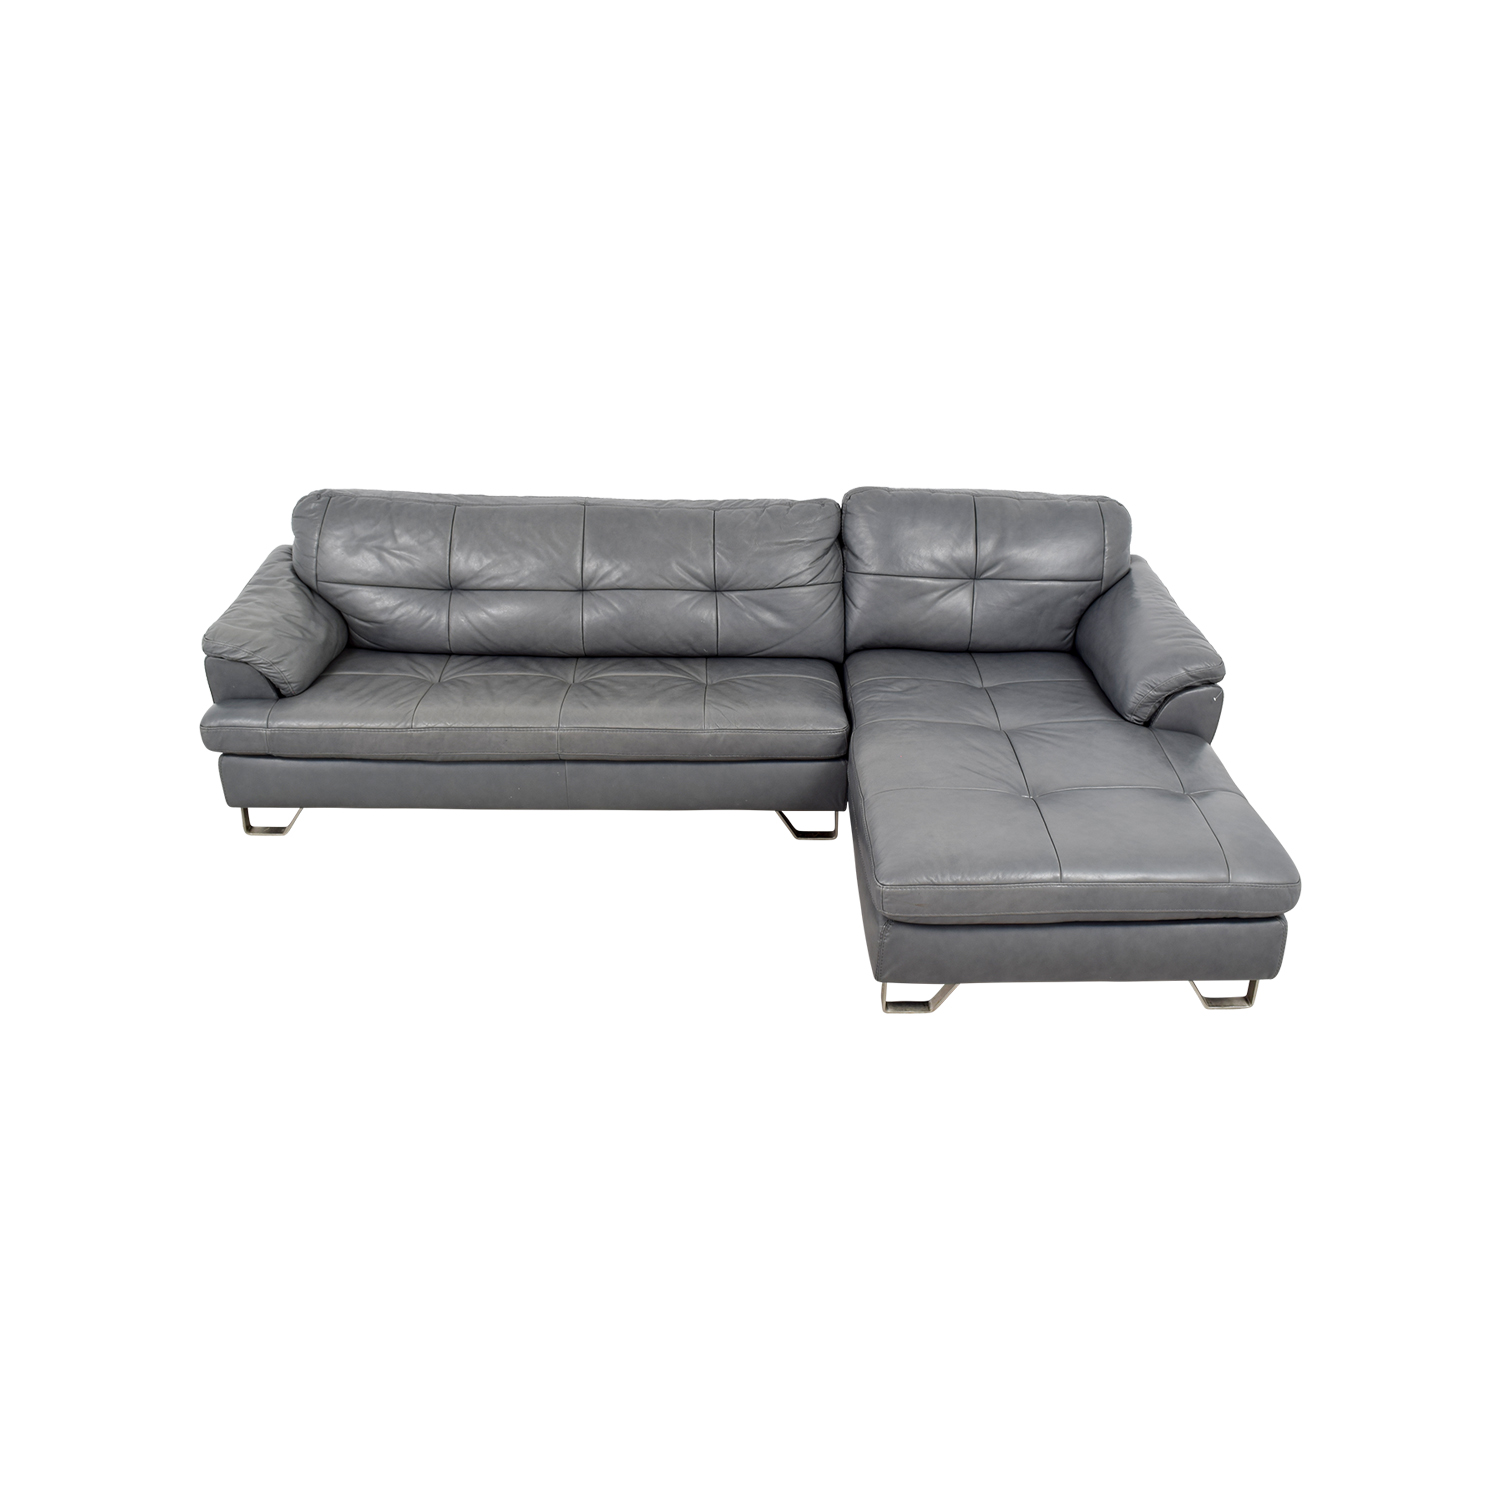 83 Off Ashley Furniture Ashley Furniture Gray Tufted Sectional Sofa Sofas